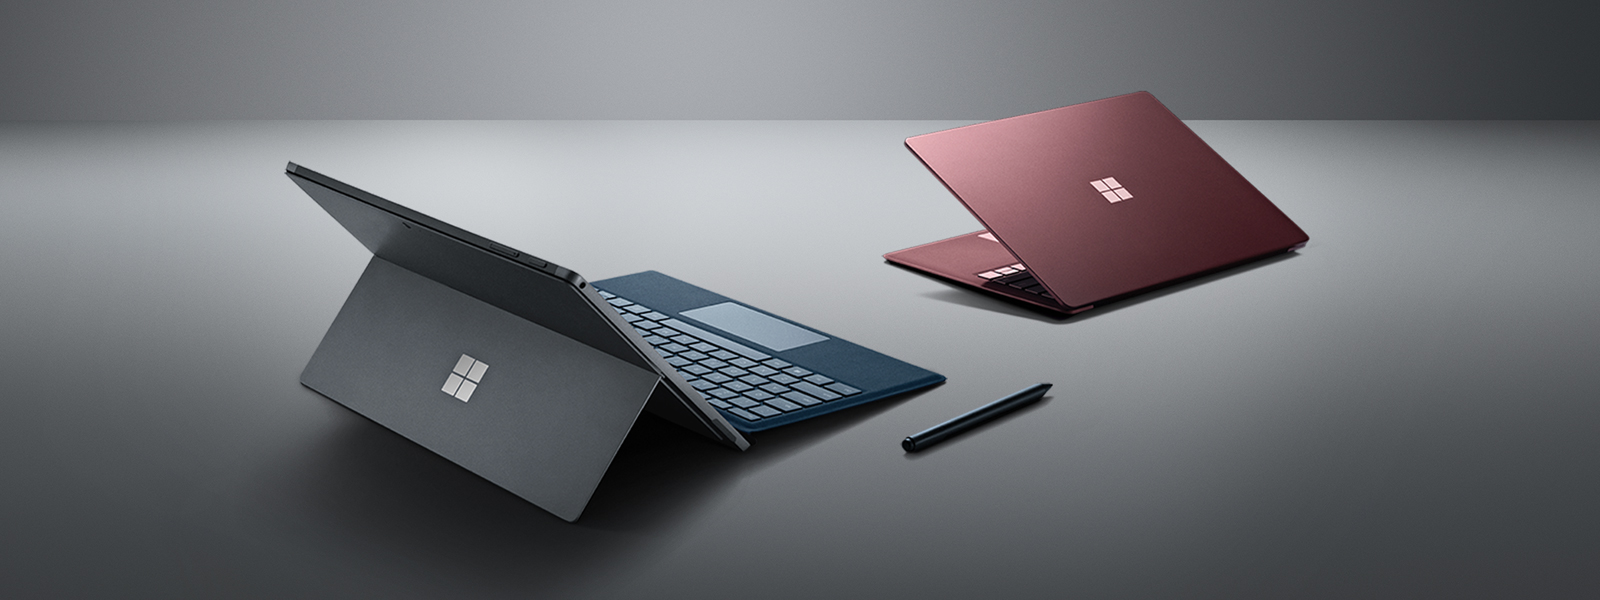 Surface Laptop 2, Surface Pro 6